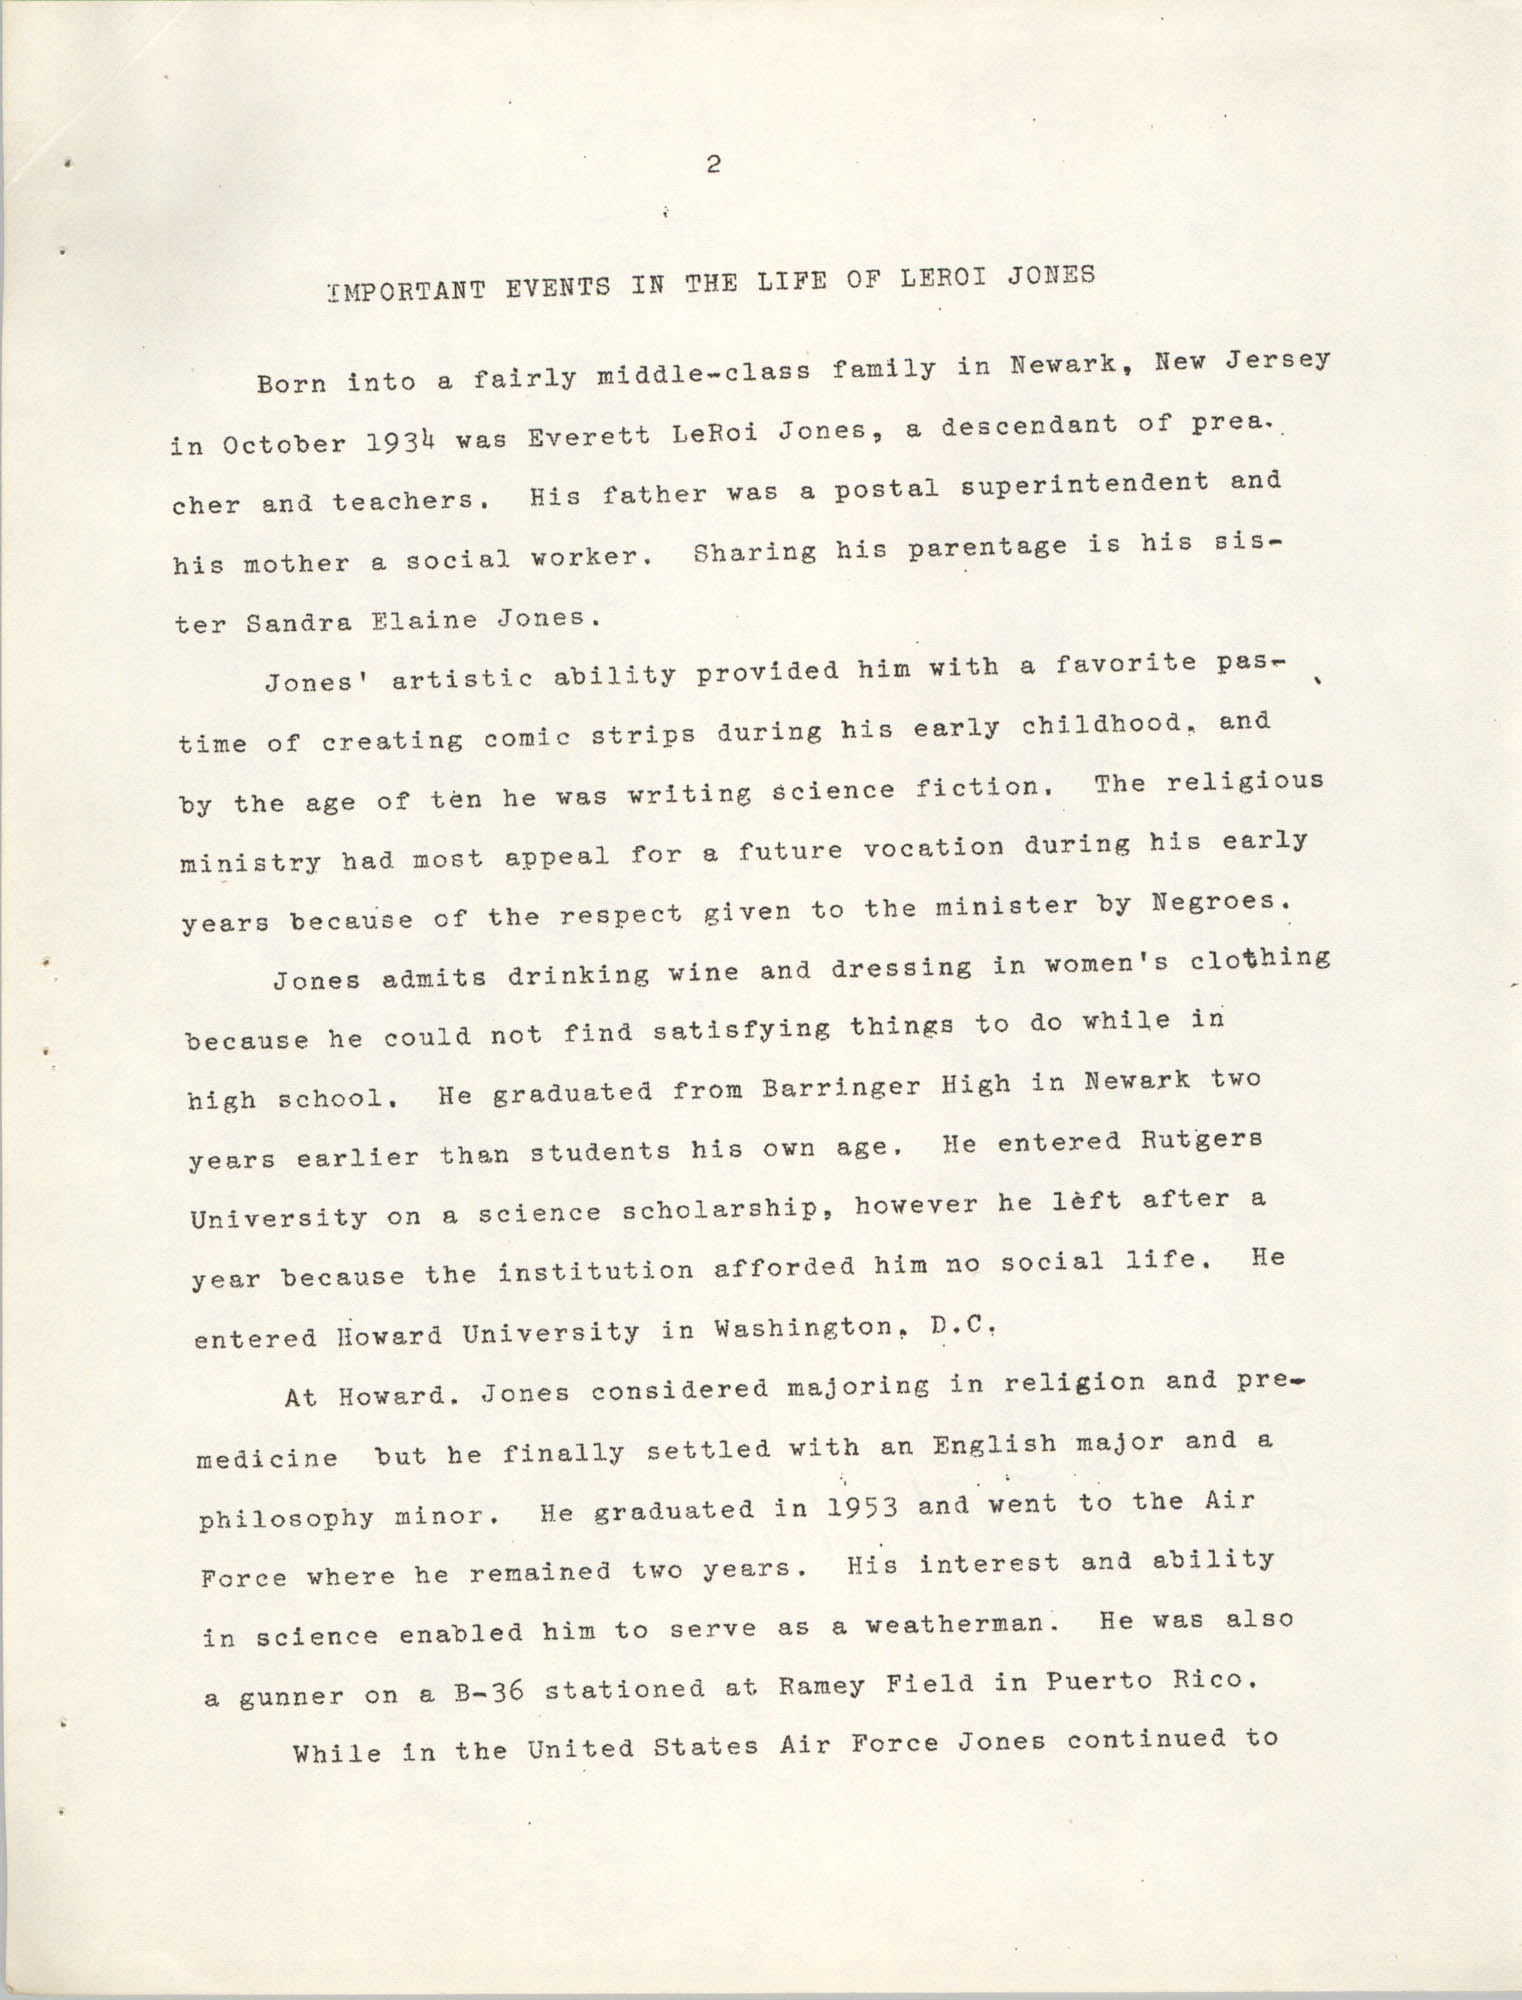 Center for African and African-American Studies Bibliography No. 2, Page 2